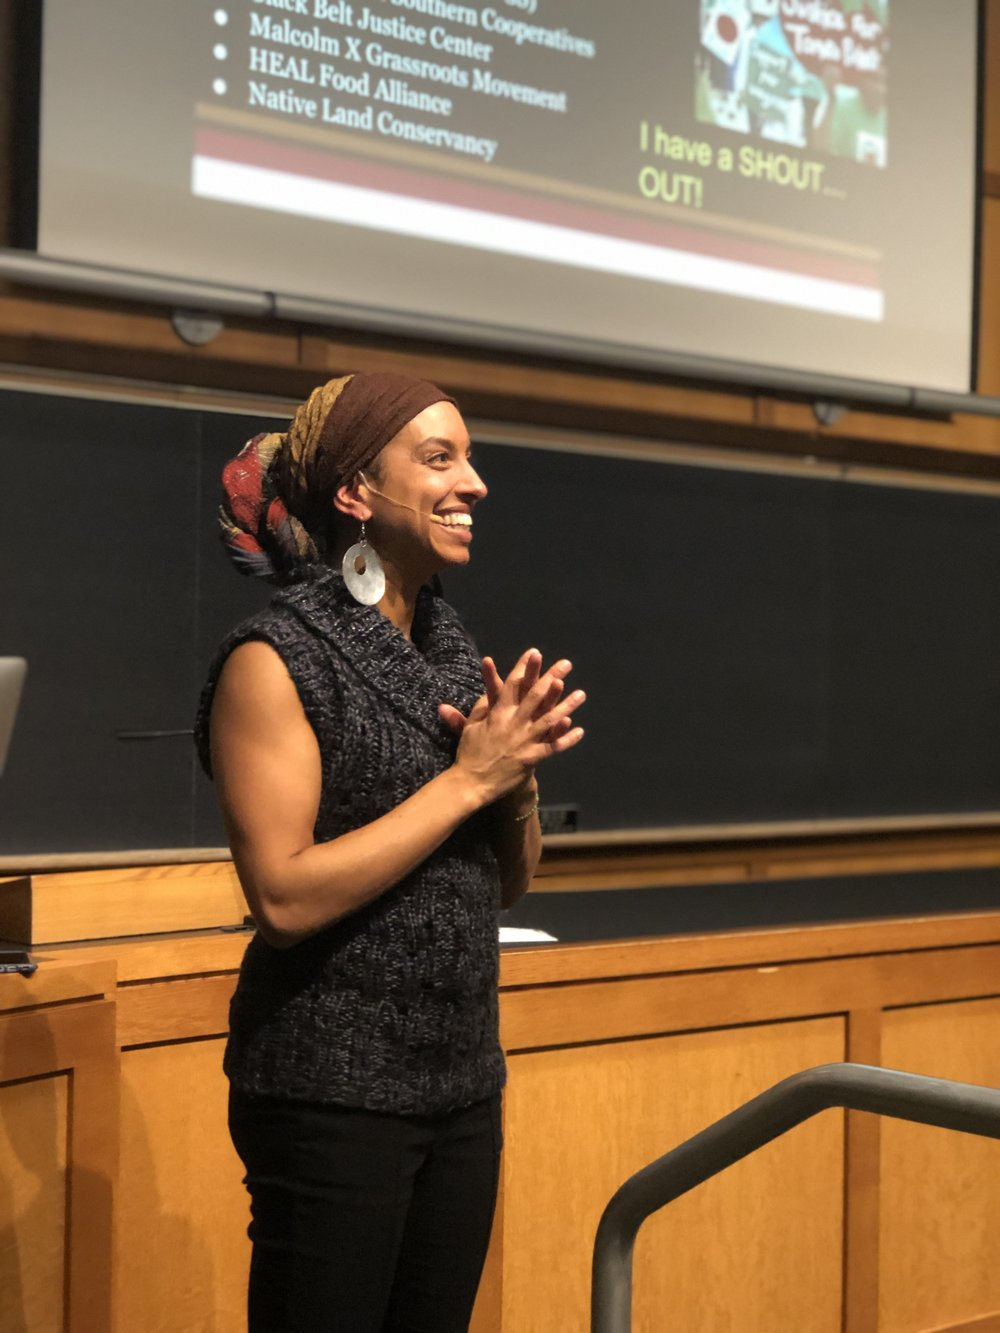 Photo courtesy of Amelia Green '20   Leah Penniman, an educator, farmer, author and activist, gave a talk about food justice on campus on Nov. 29.